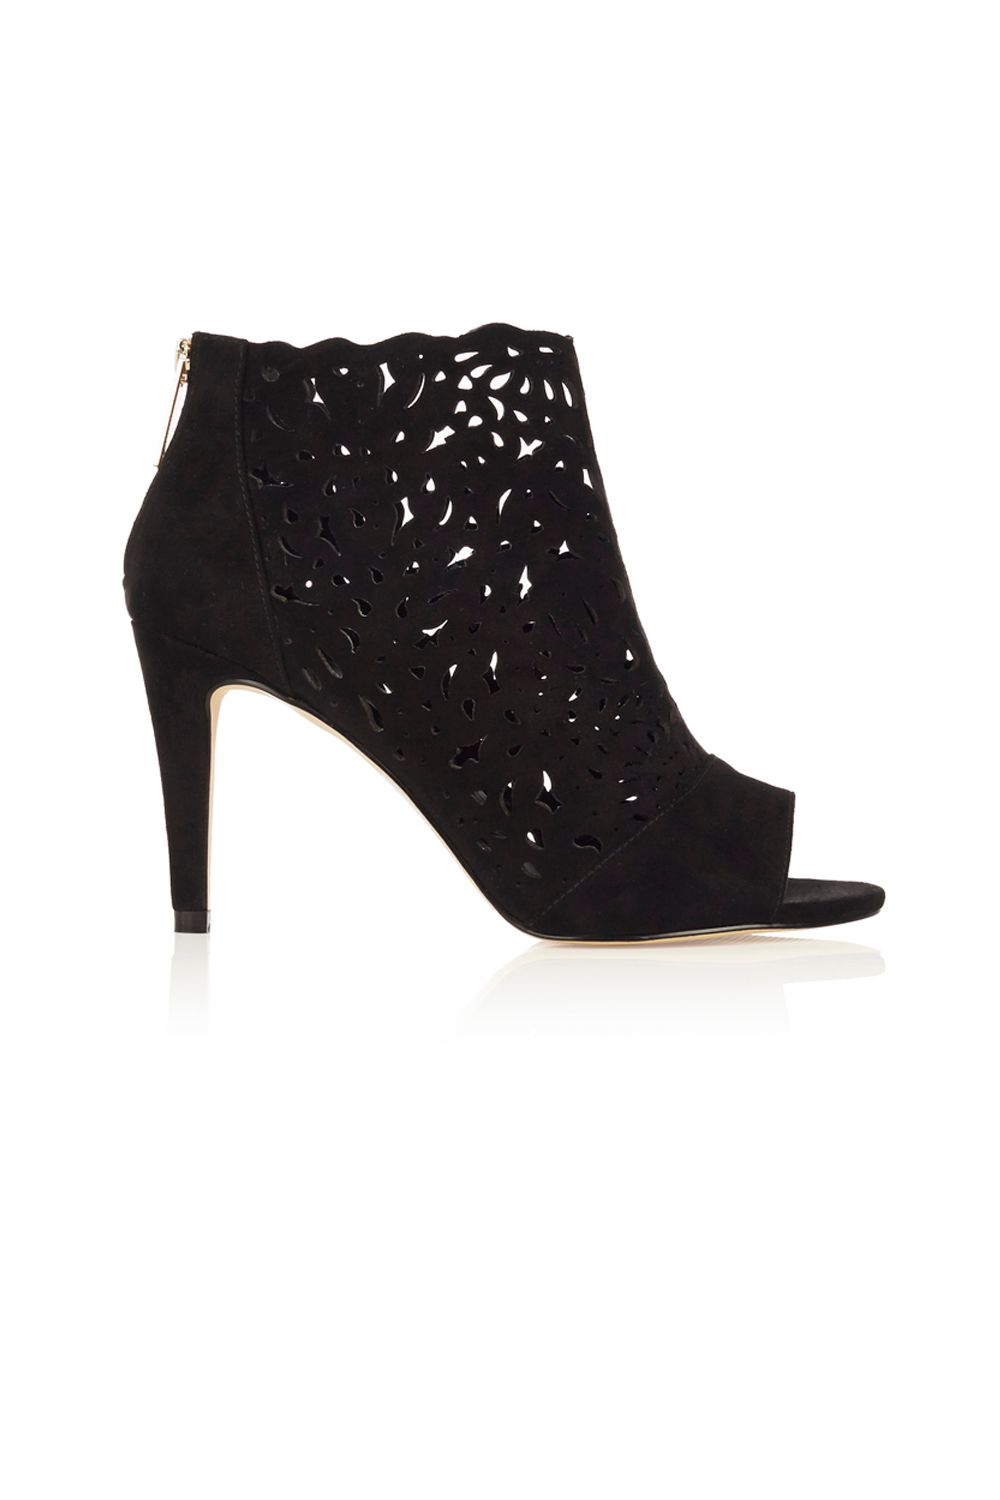 Coast Coast Lizeth Laser Cut Shoes, Black